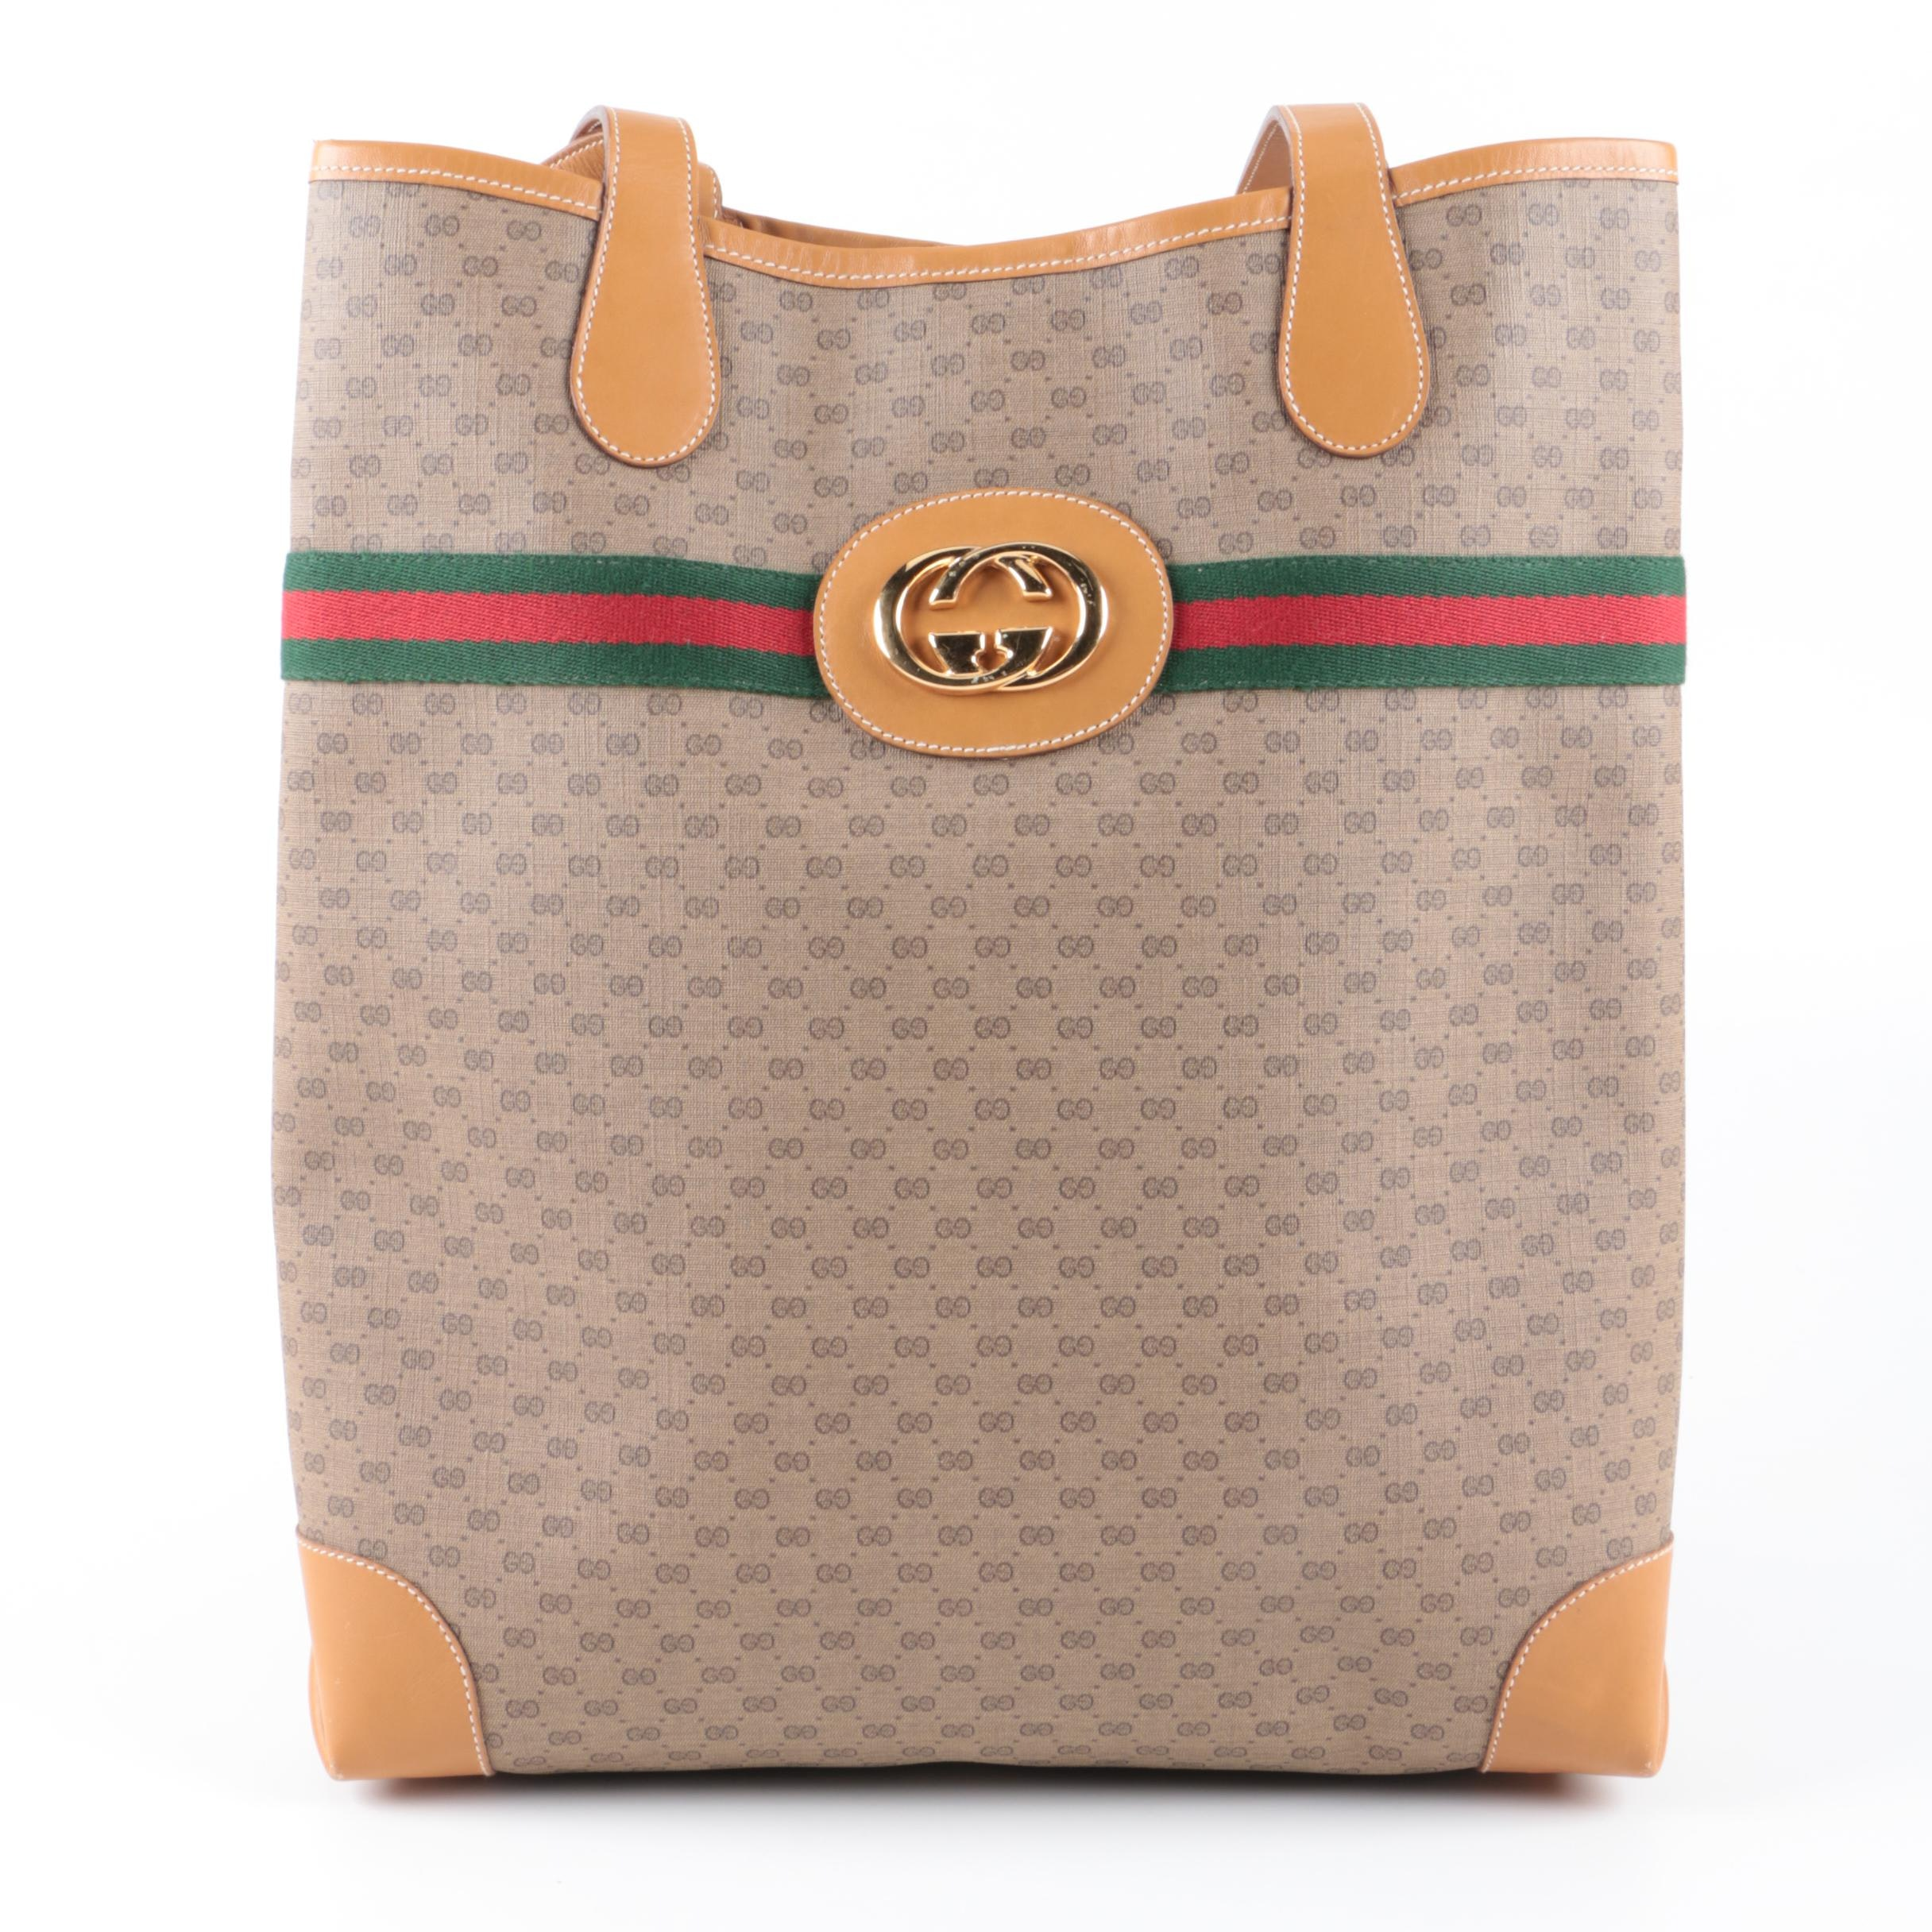 Gucci Supreme Canvas Tote Bag